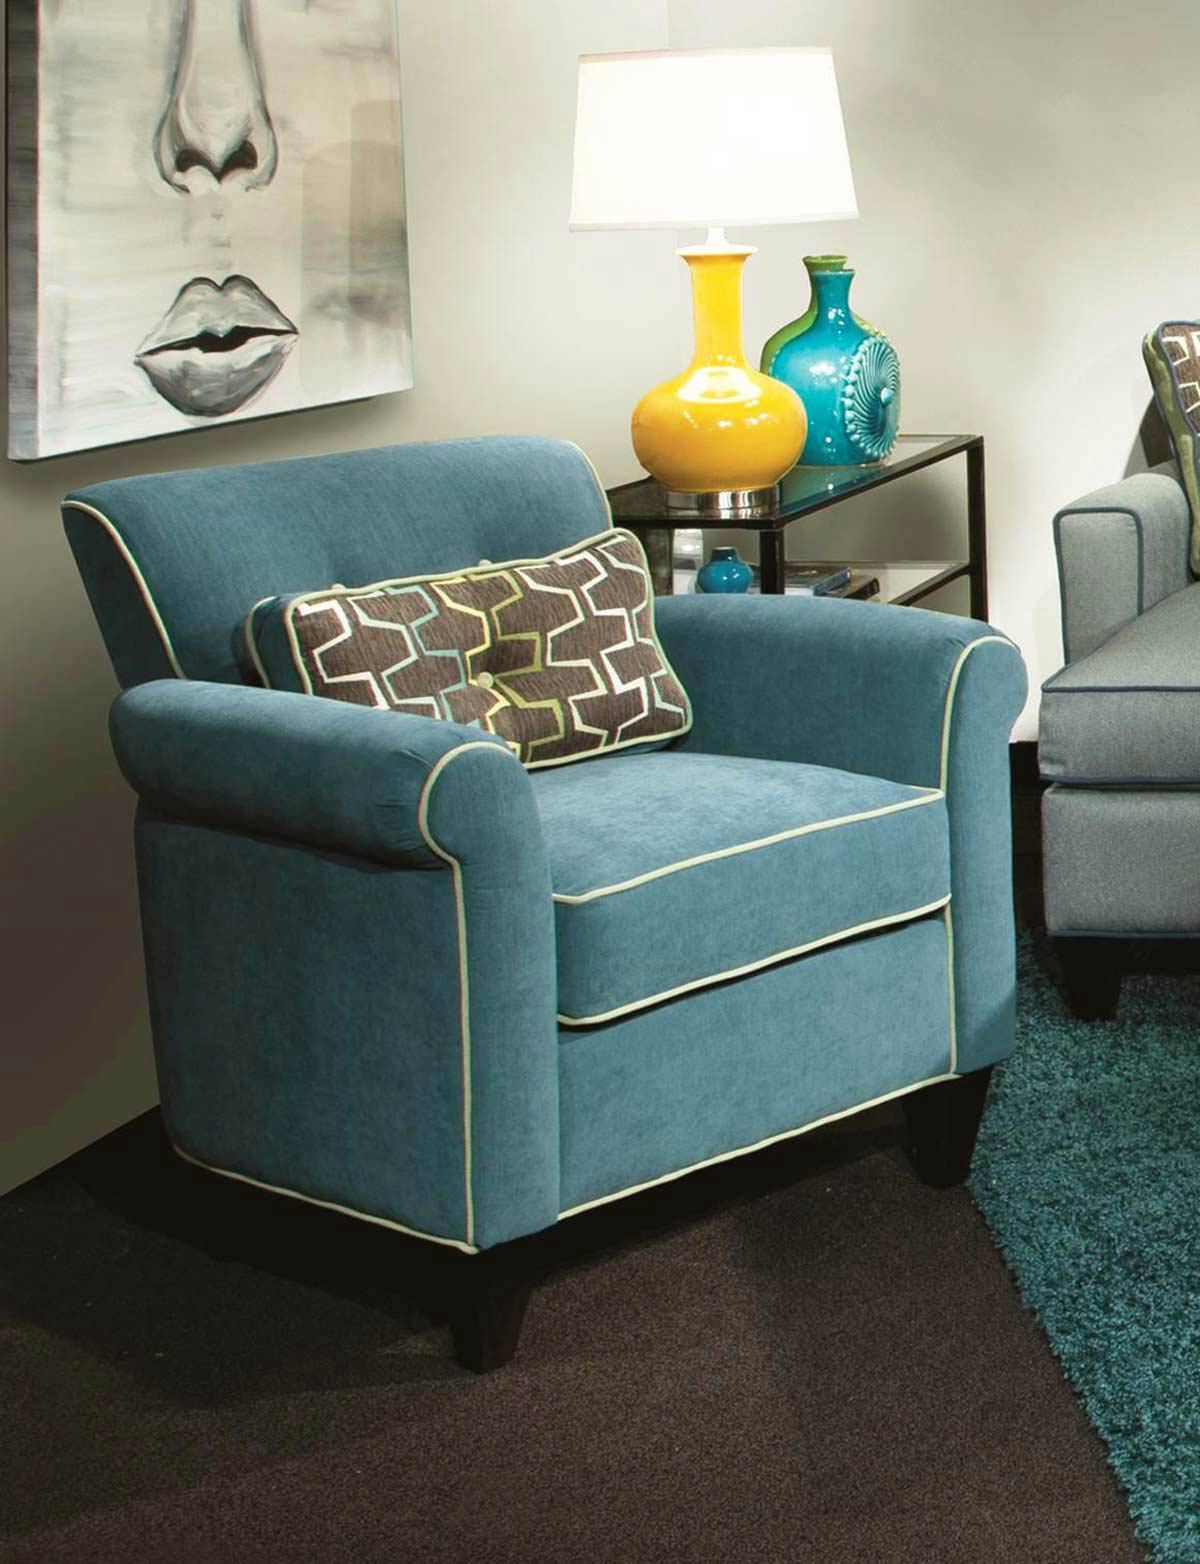 Chelsea Home Furniture Tiffany Accent Chair - Jukebox Blueberry 278000C-011